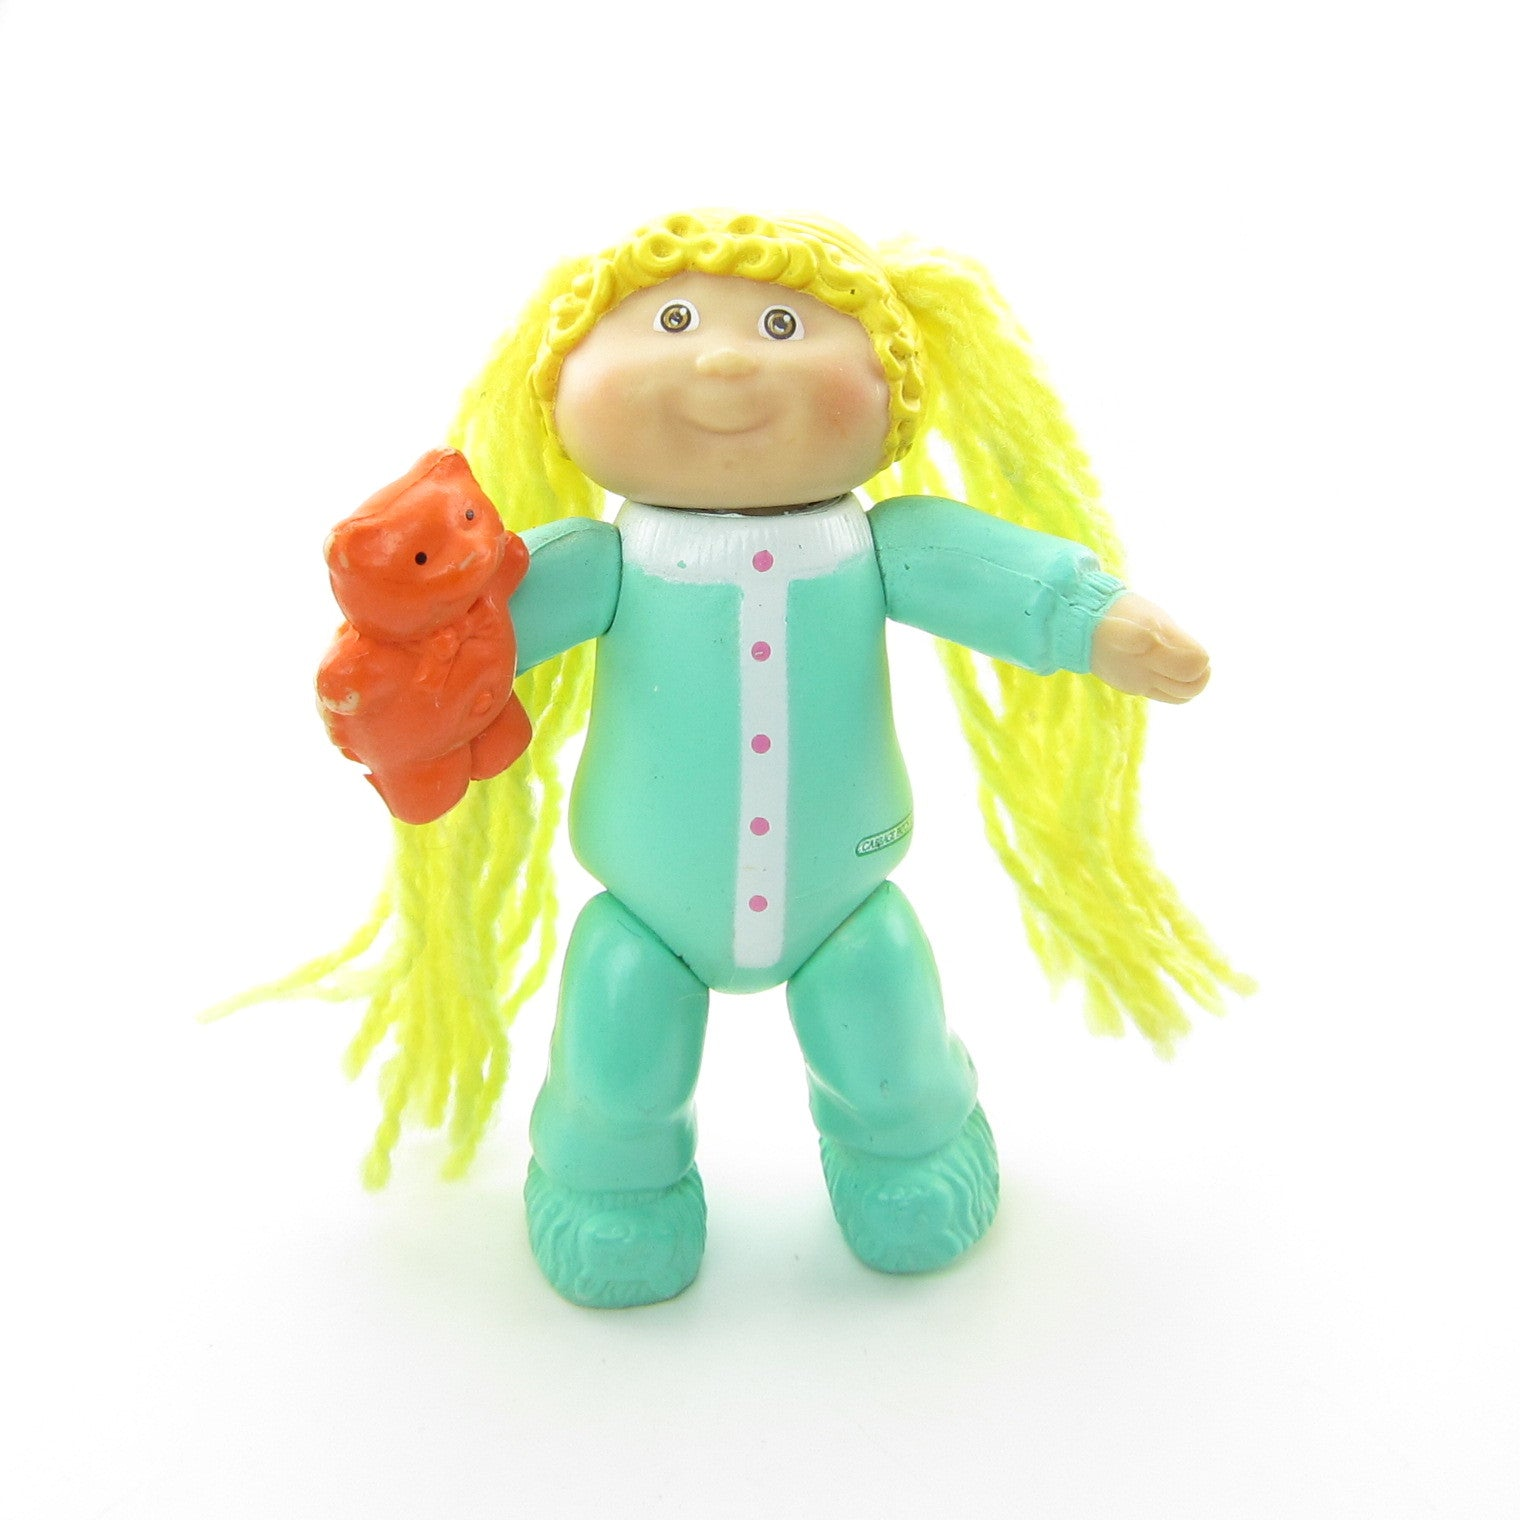 Cabbage Patch Kids girl in pajamas poseable figure